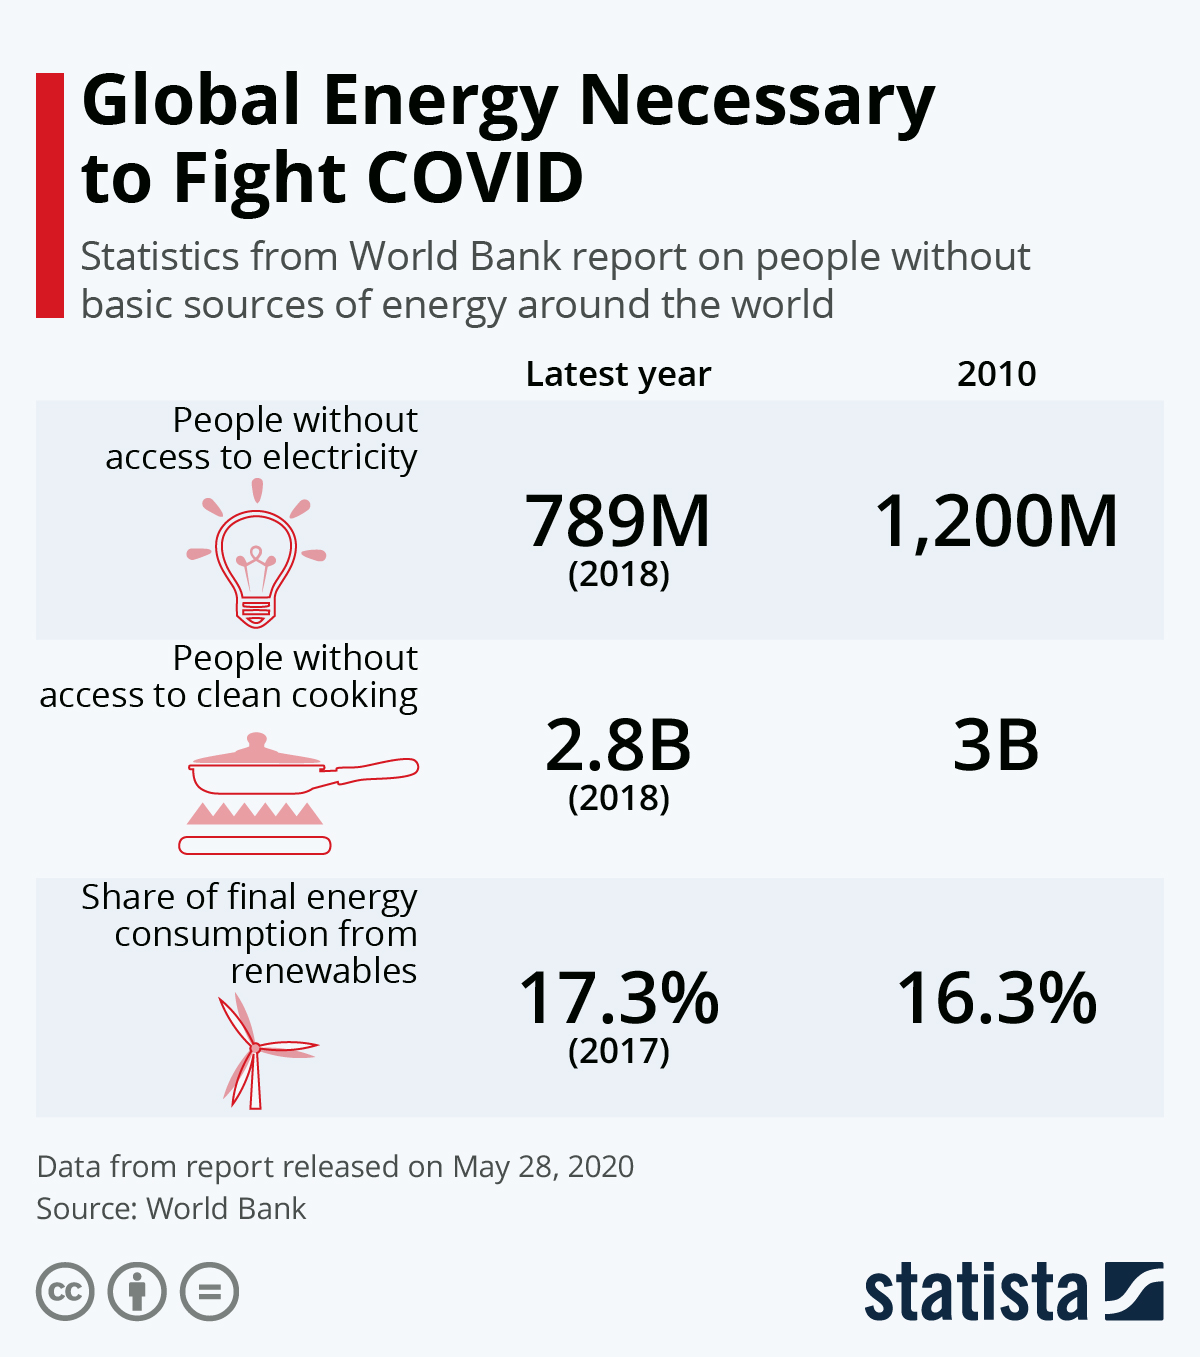 Lack of resources to fight COVID-19 #Infographic